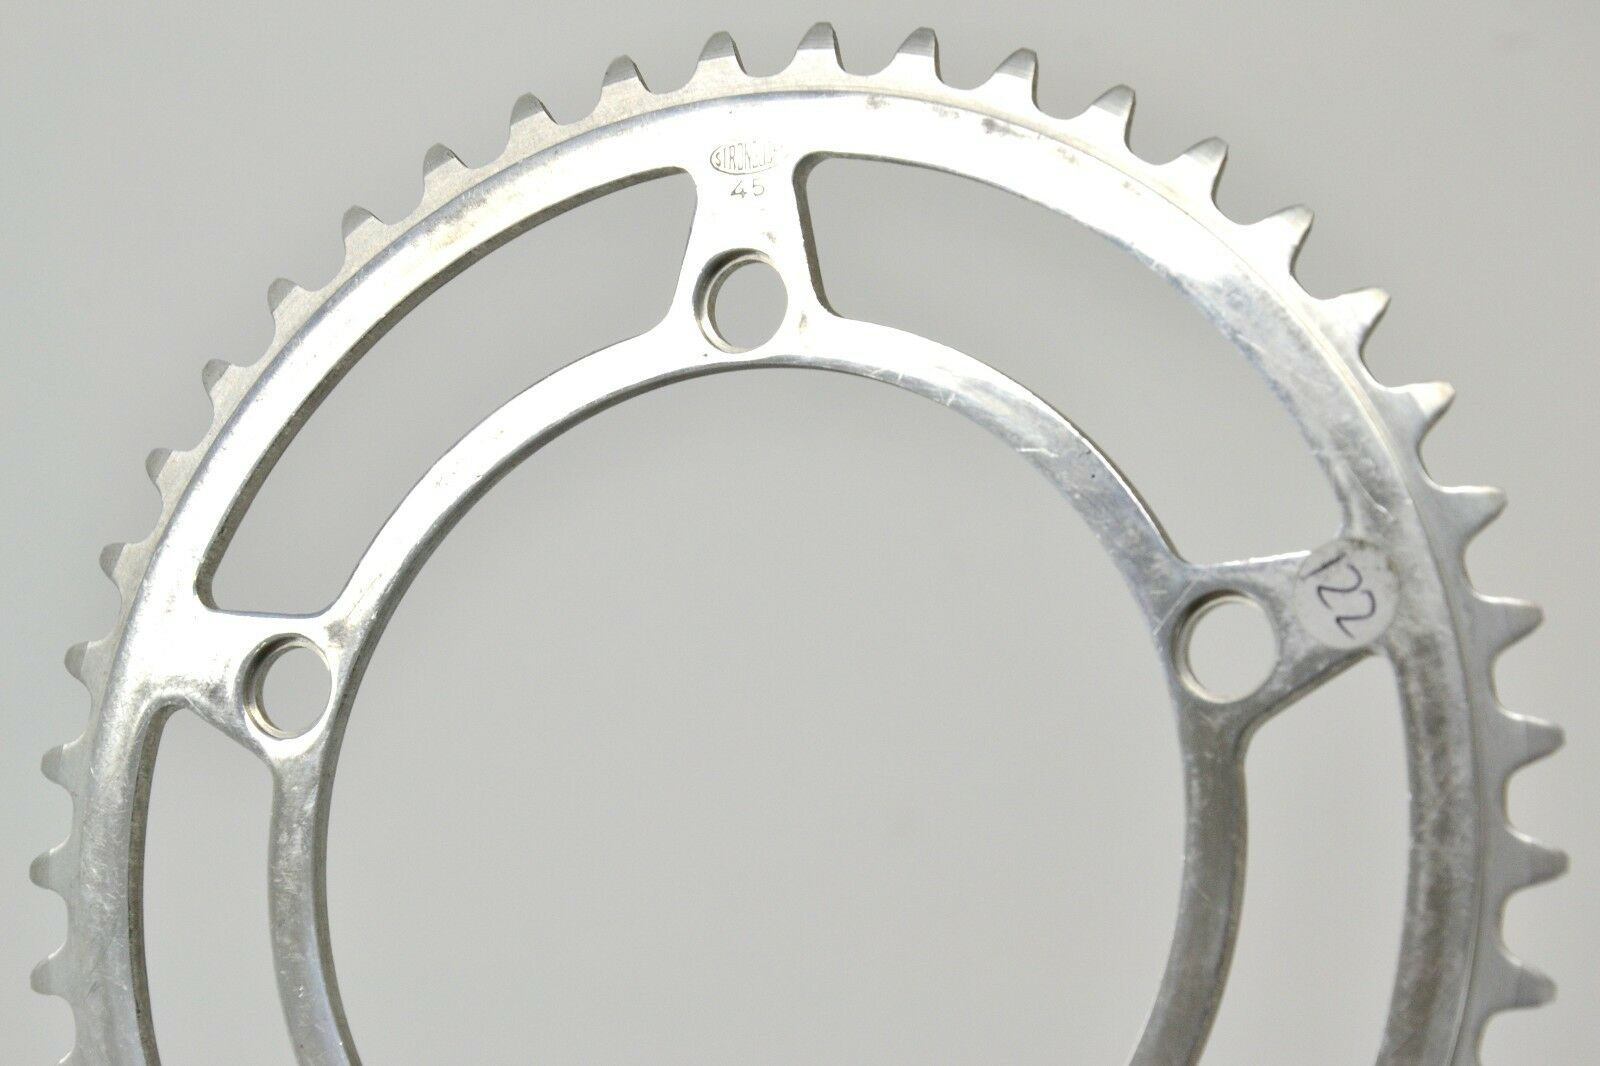 Stronglight Chainring 122BCD 45T 3 32   NOS Made in France Rene Herse  customers first